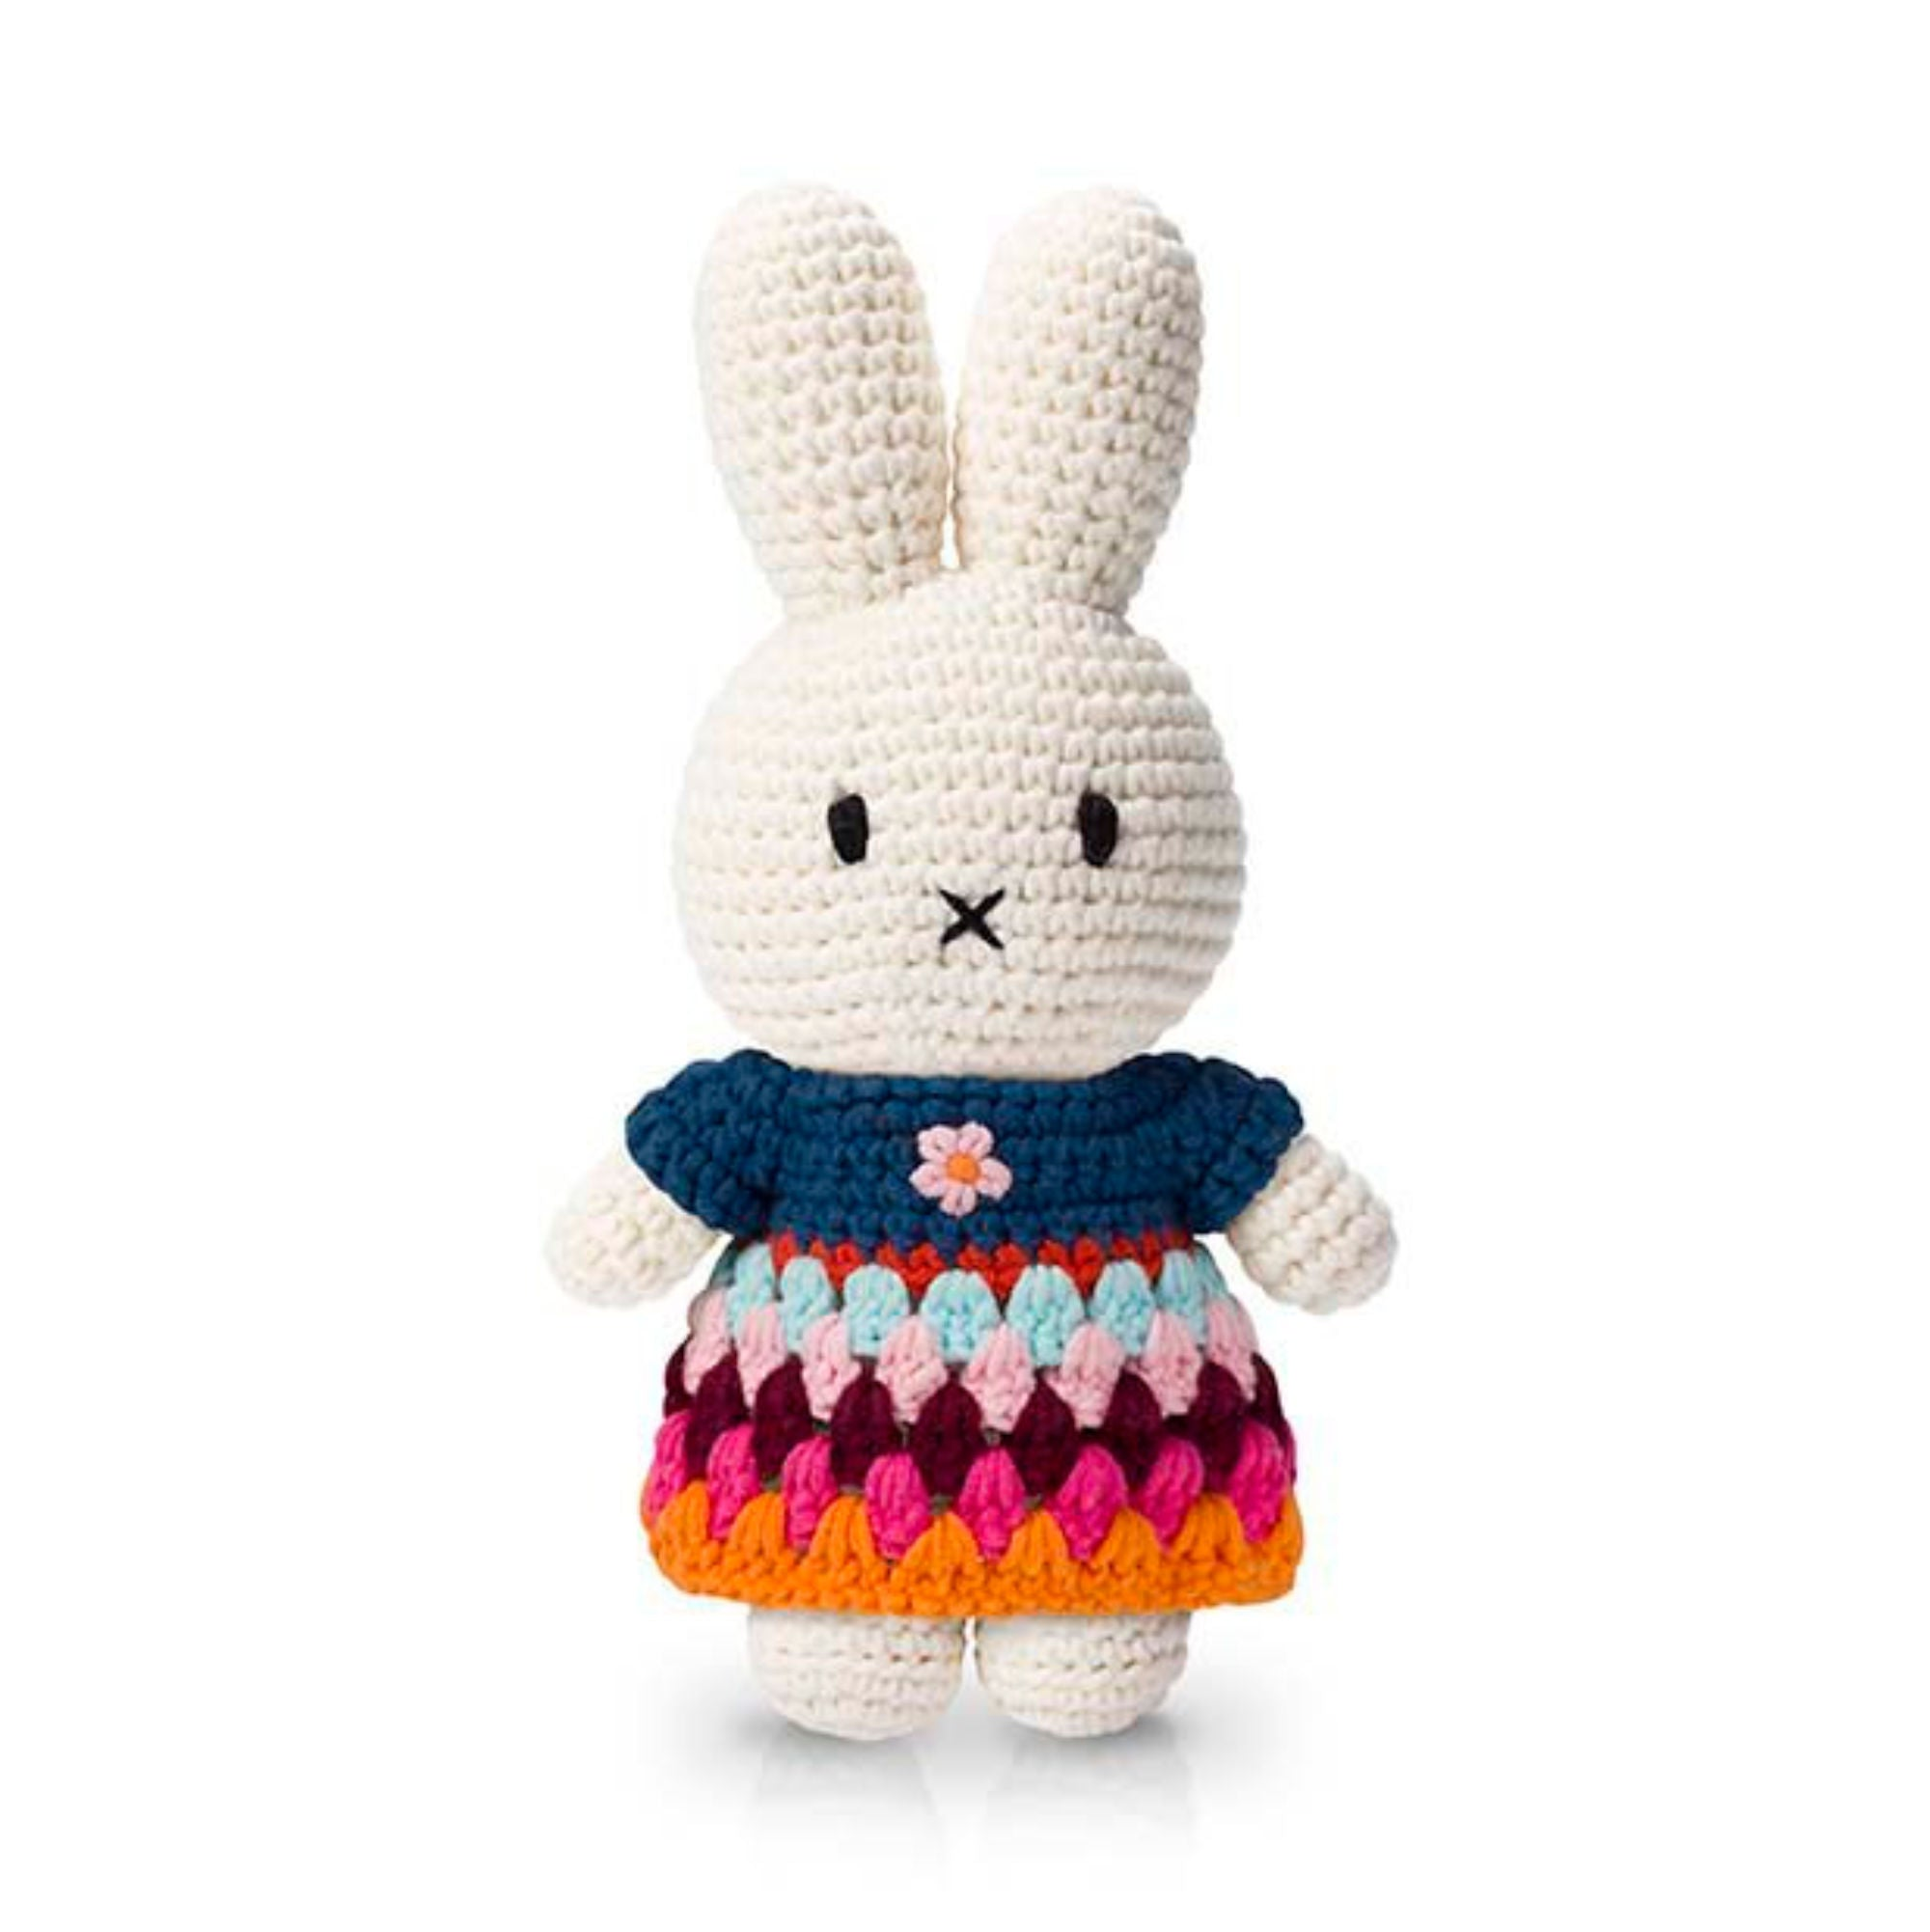 Just Dutch Handmade Dolls, Miffy and her rainbow dress